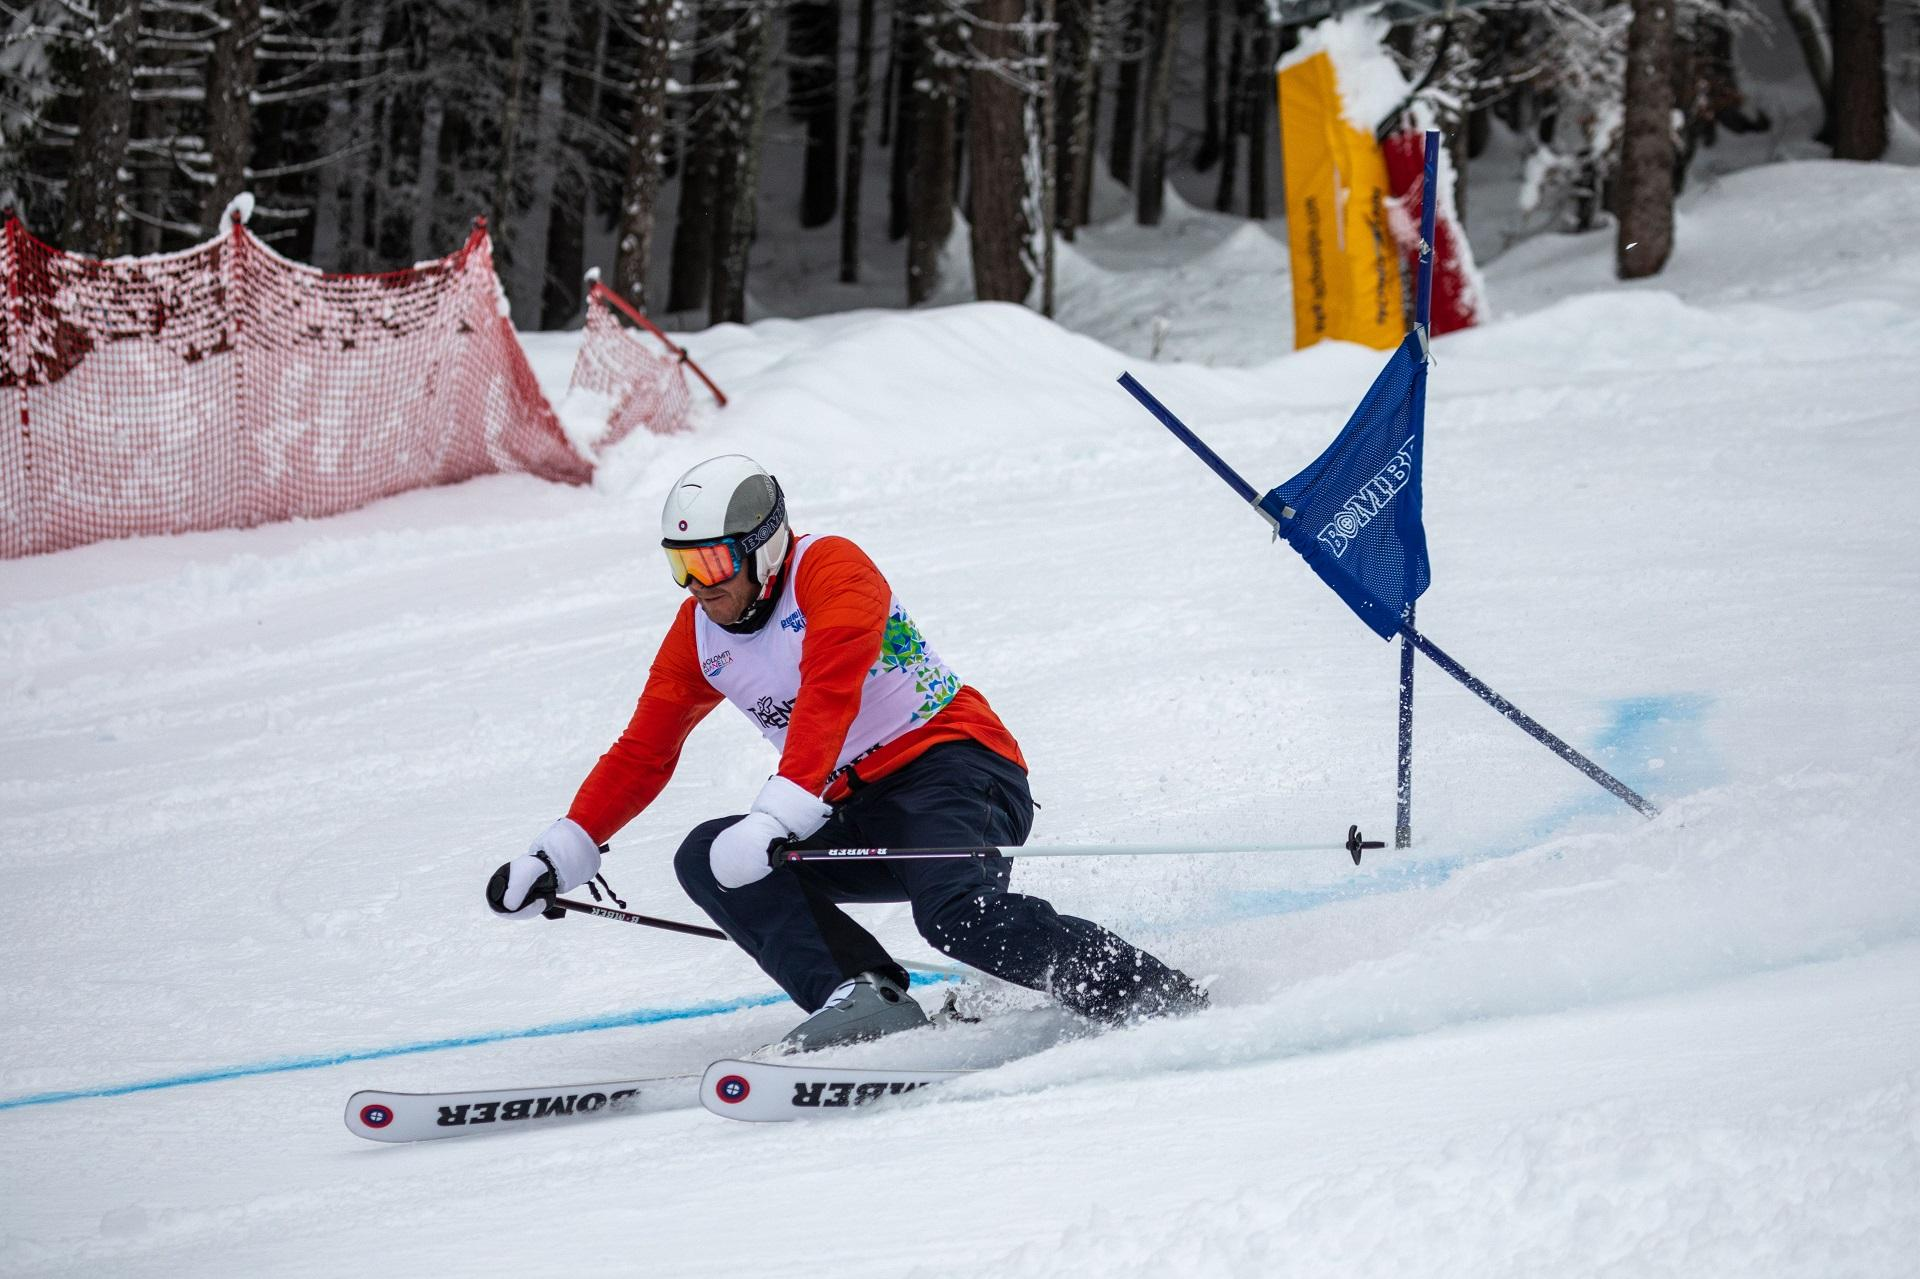 Bode Miller Bomber Experience Paganella Ski Andalo